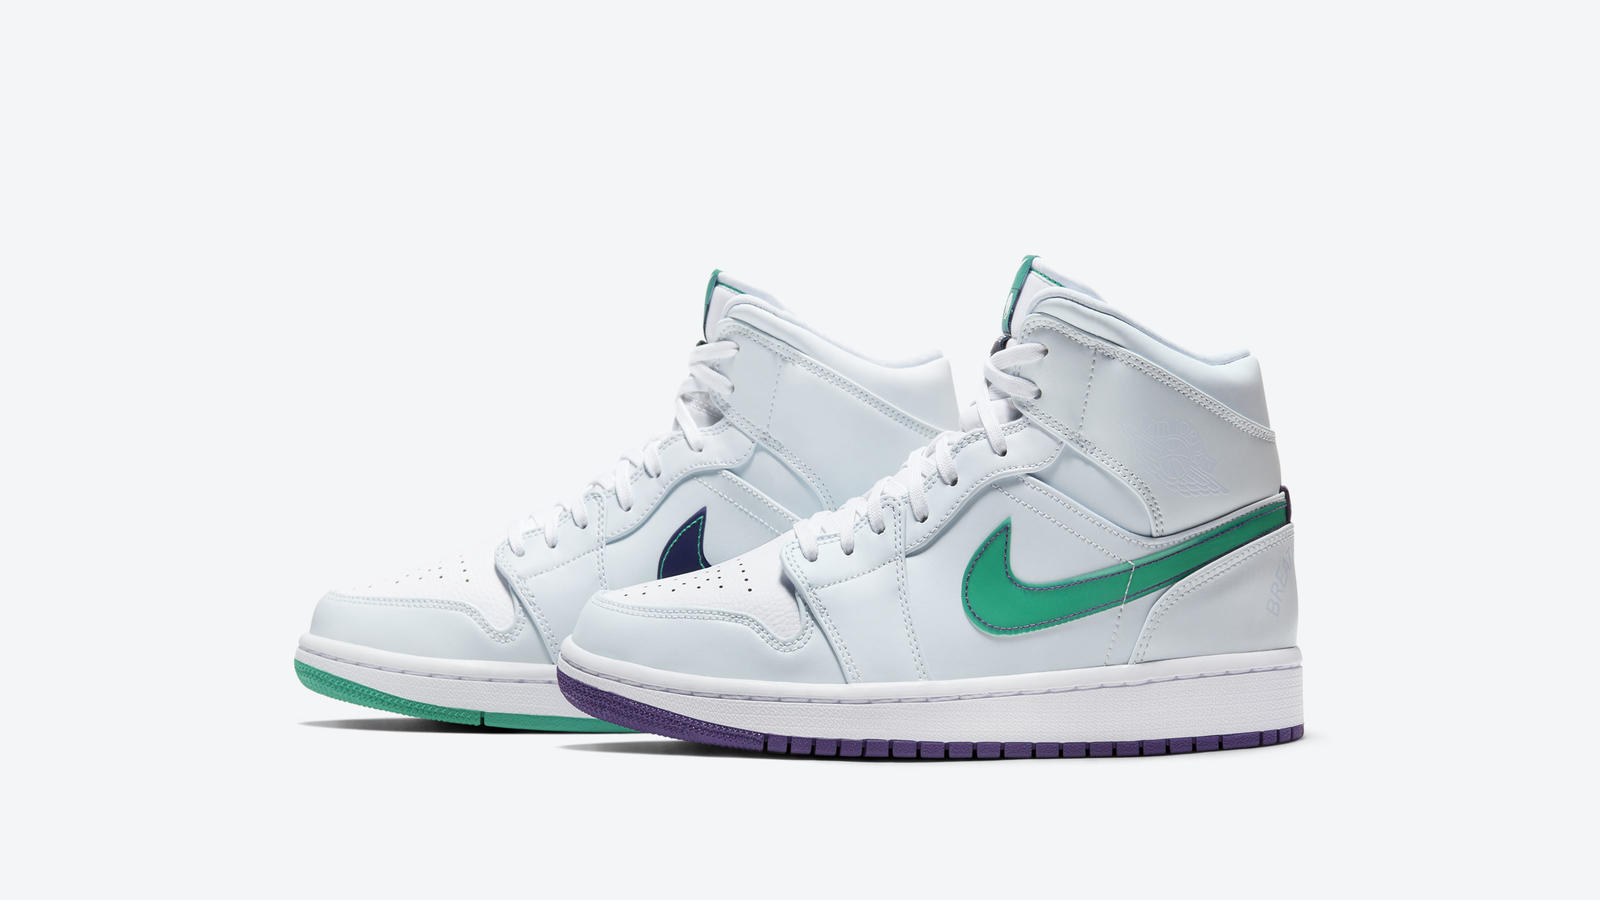 luka-doncic-air-jordan-1-mid-de'aaron-fox-brittney-griner-air-force-1-ben-simmons-blazer-mid-official-images-and-release-date